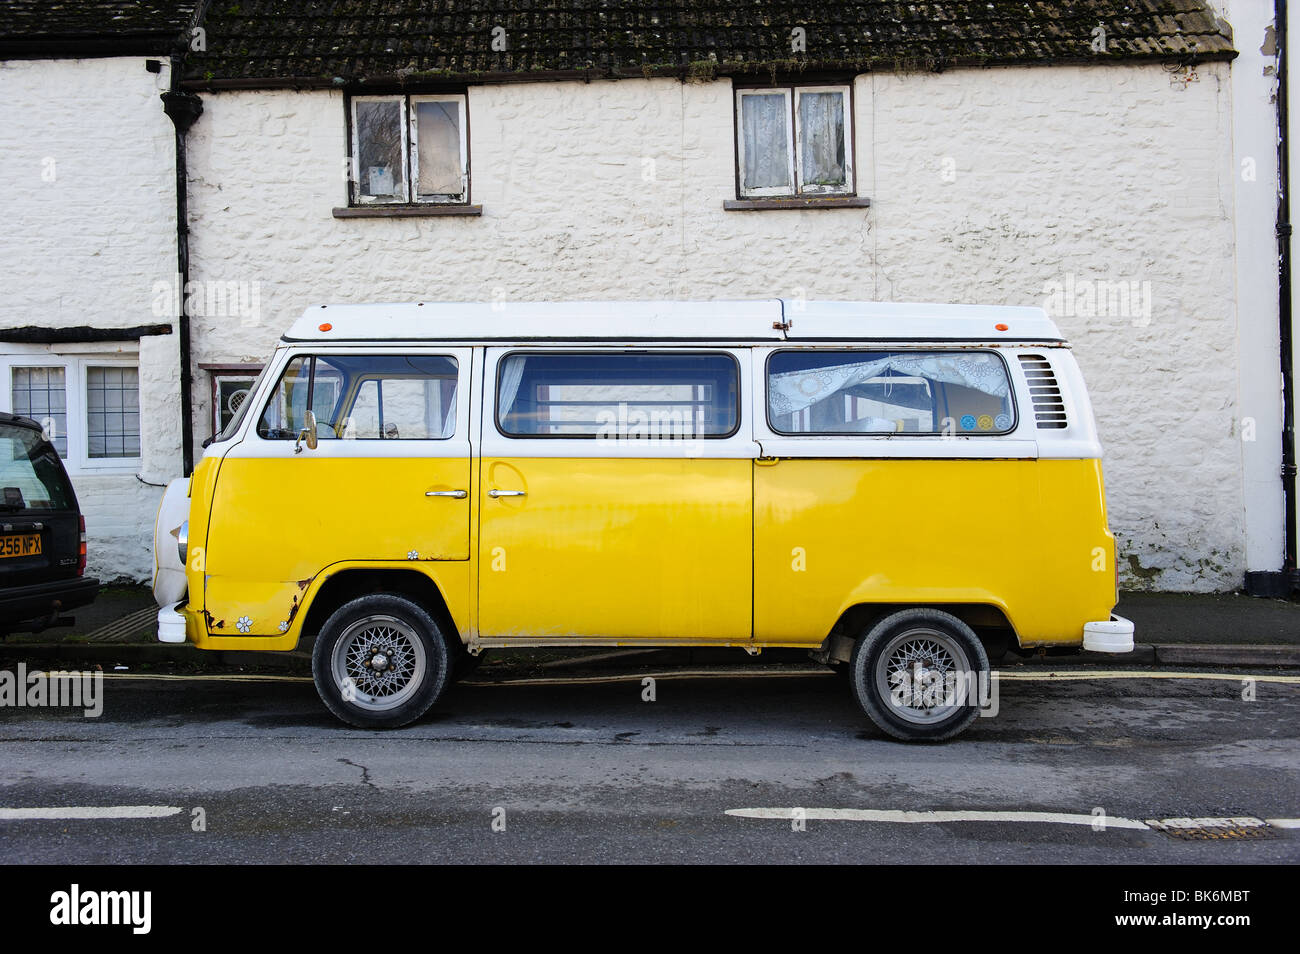 Volkswagen Camper Van Yellow Hippy Hippies Camping VW Festivals Profile Side View Retro Retrospective Vintage